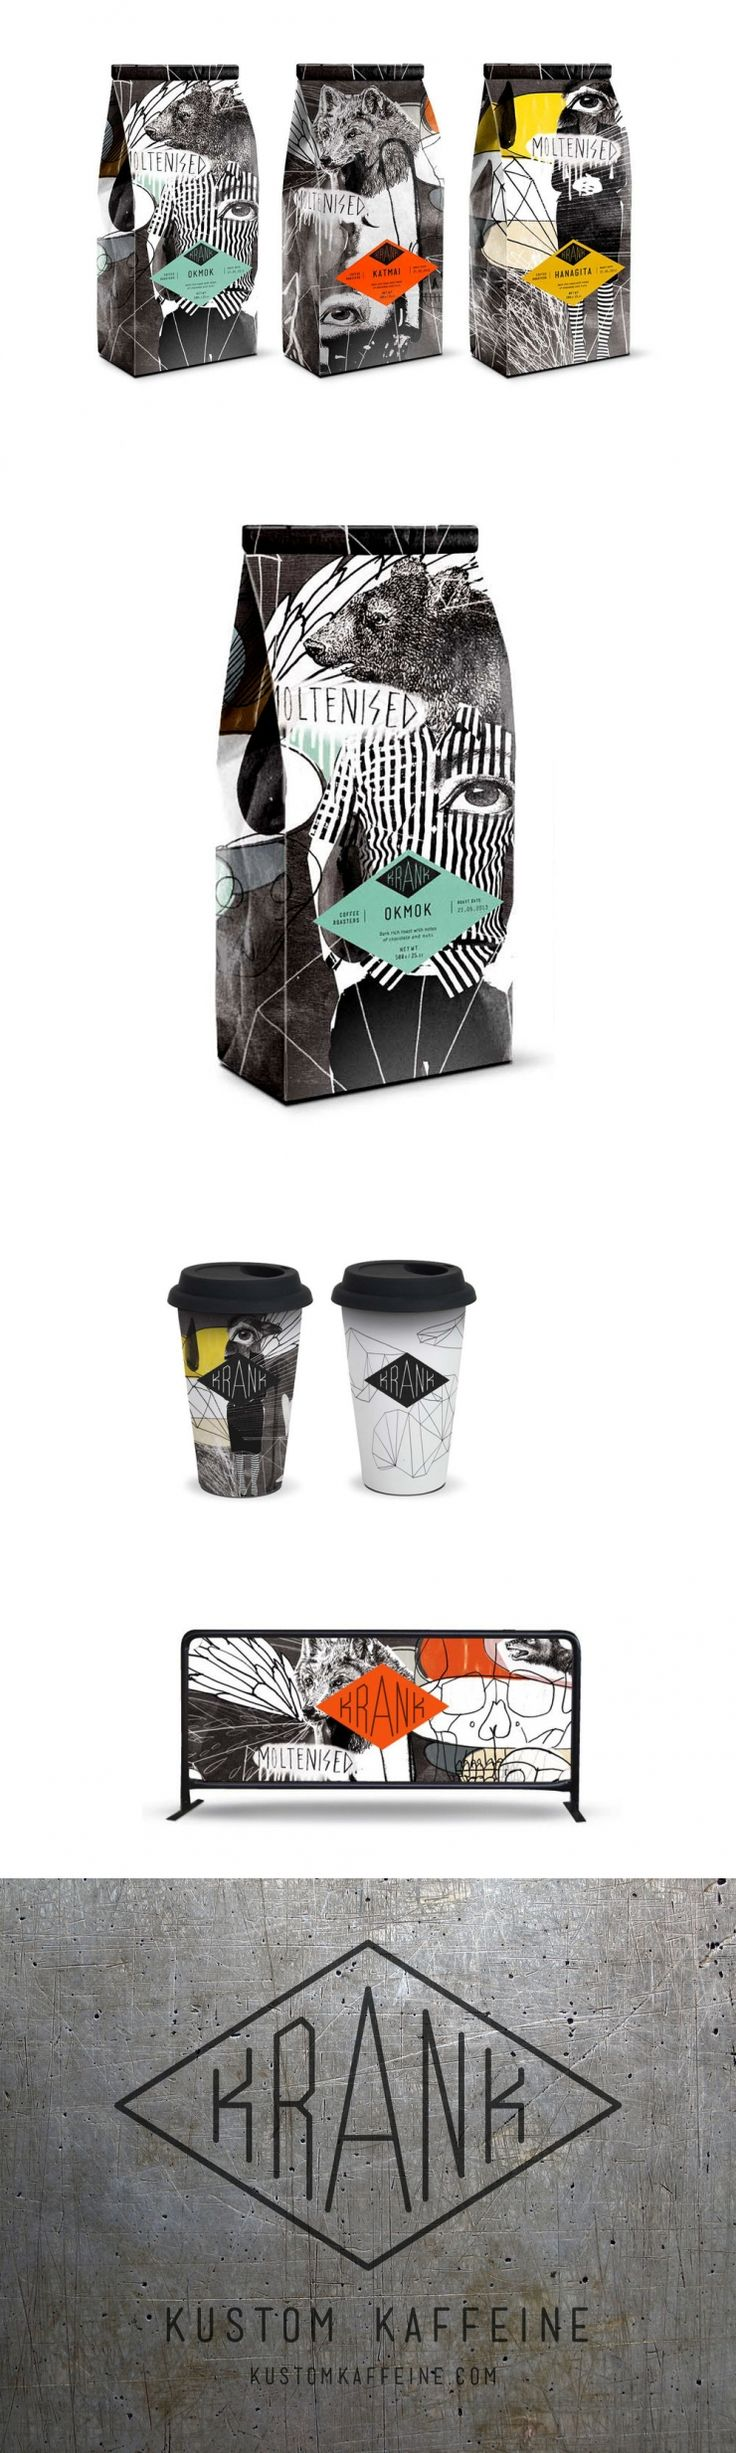 Get Your Caffeine Fix With These Collage-Style Coffee Bags — The Dieline | Packaging & Branding Design & Innovation News